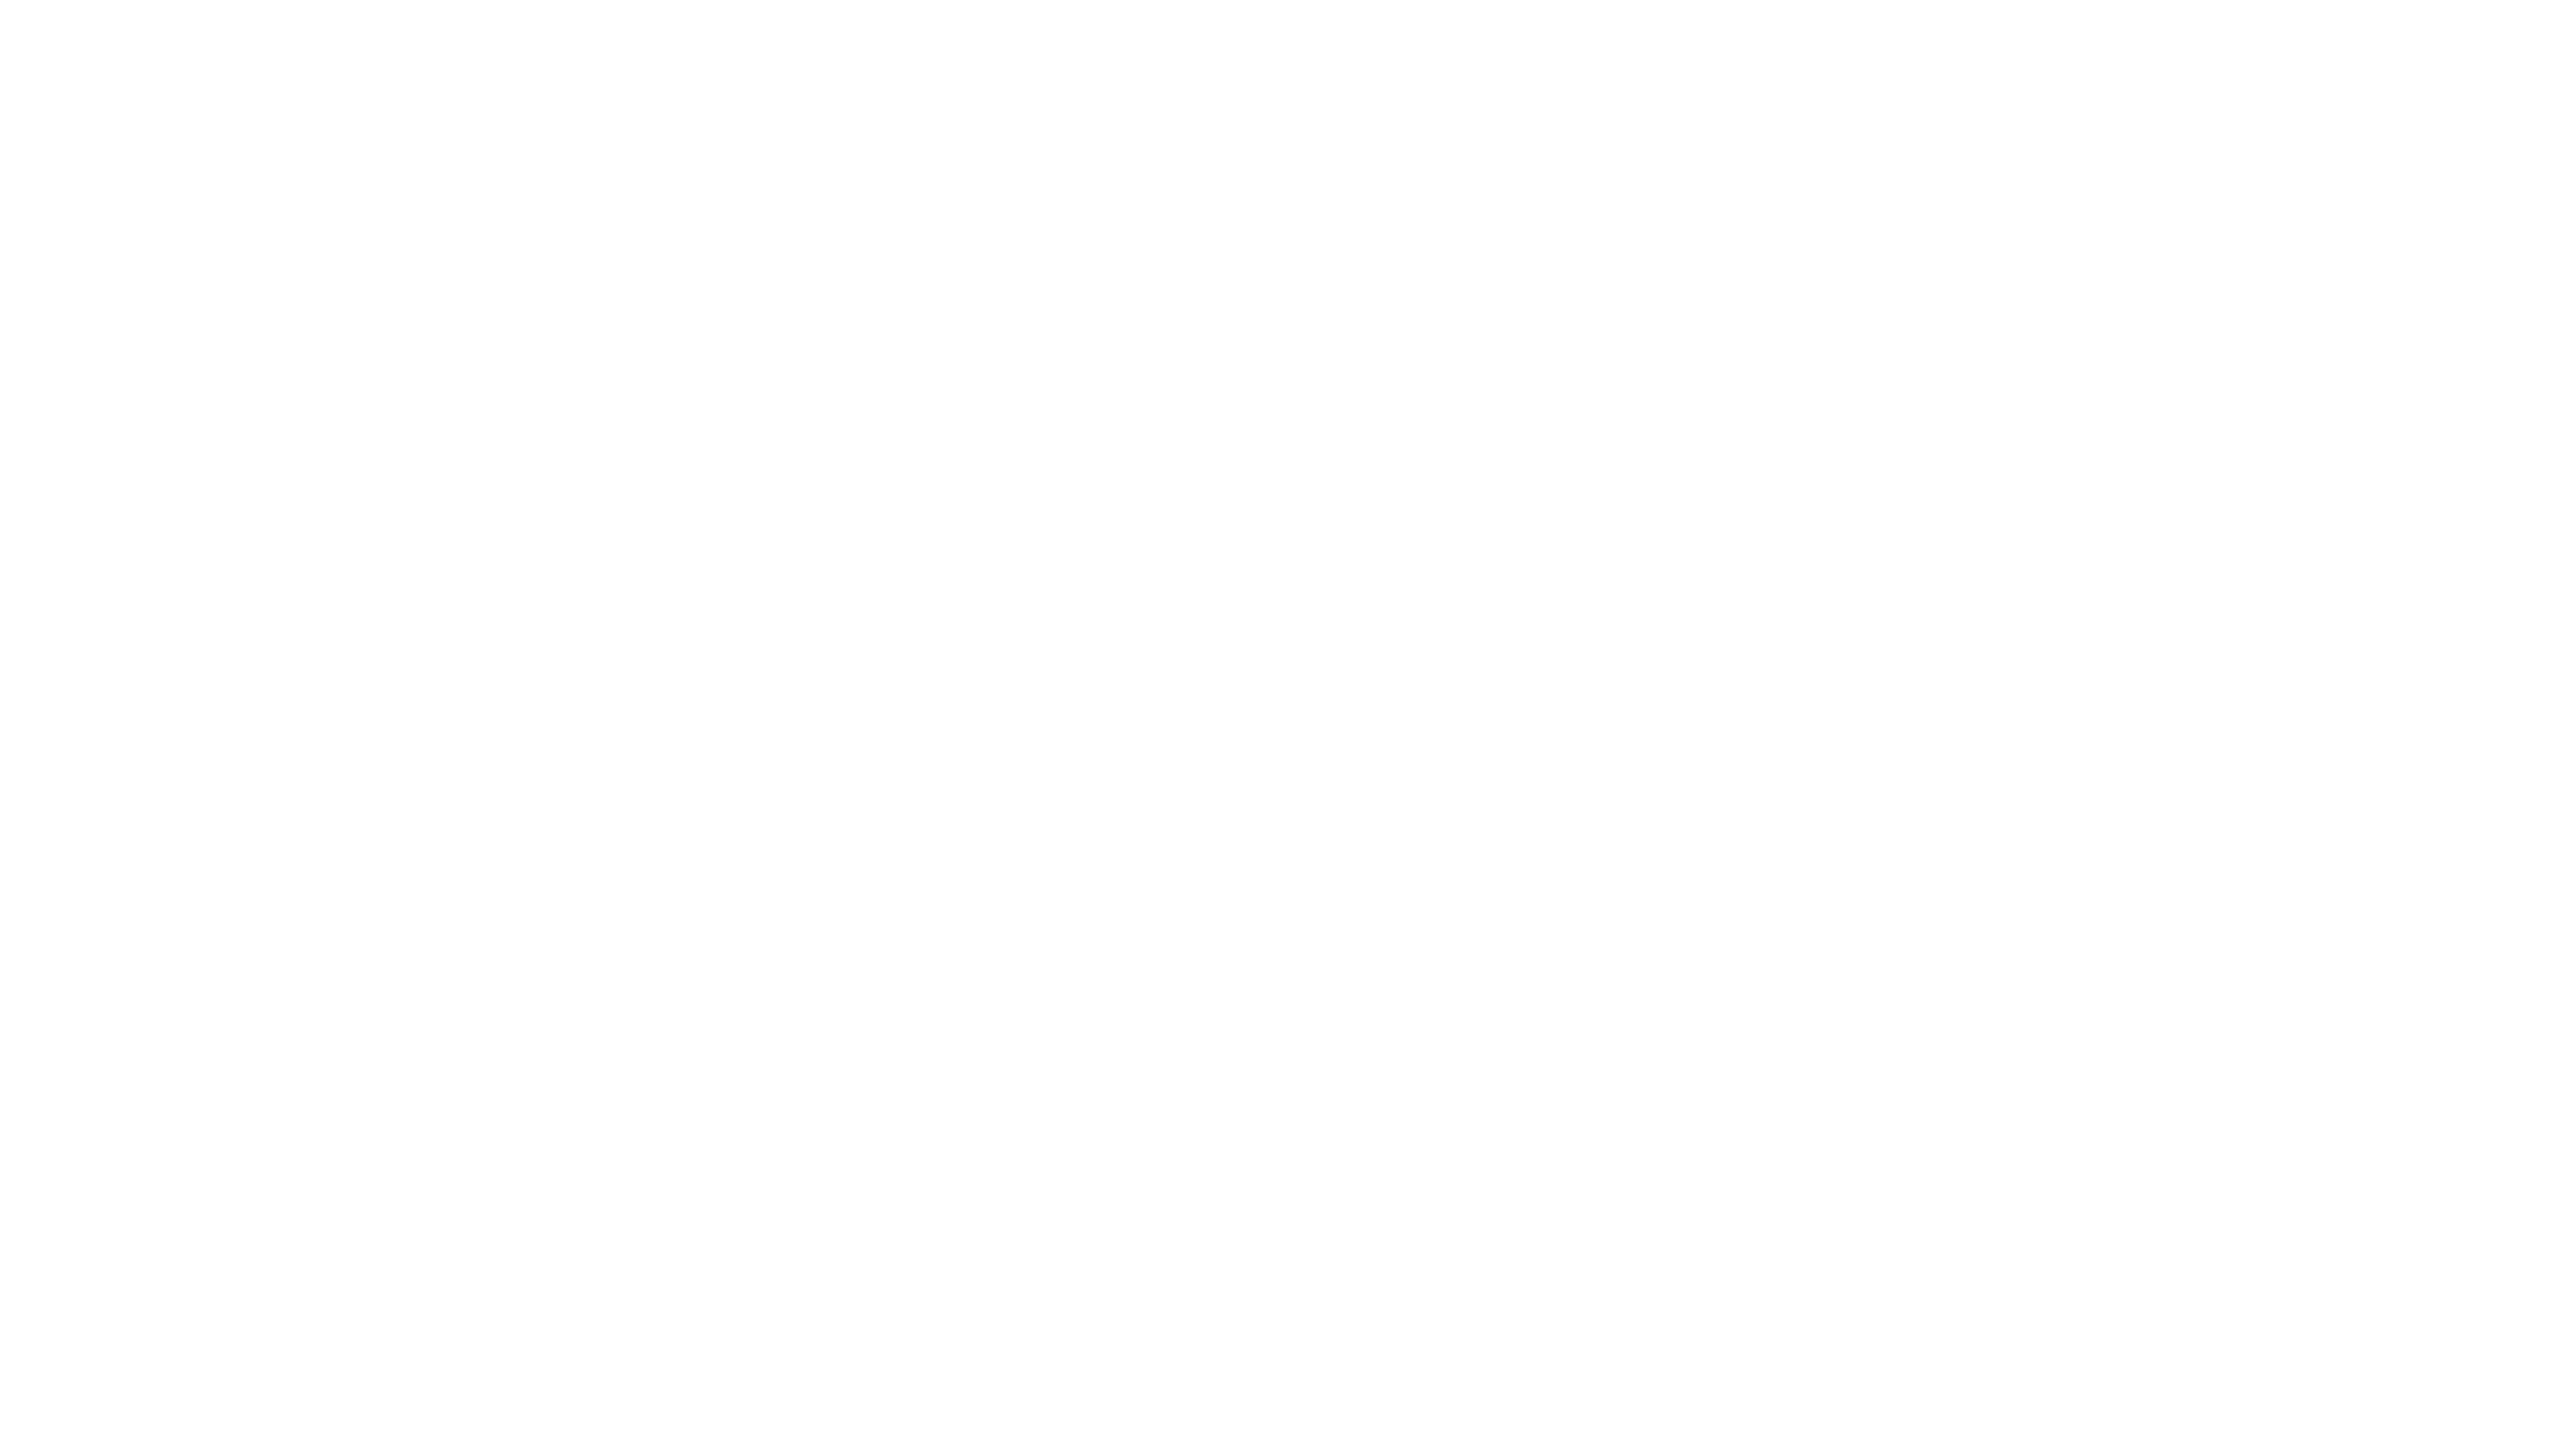 Home Sweet Home Hampton Roads